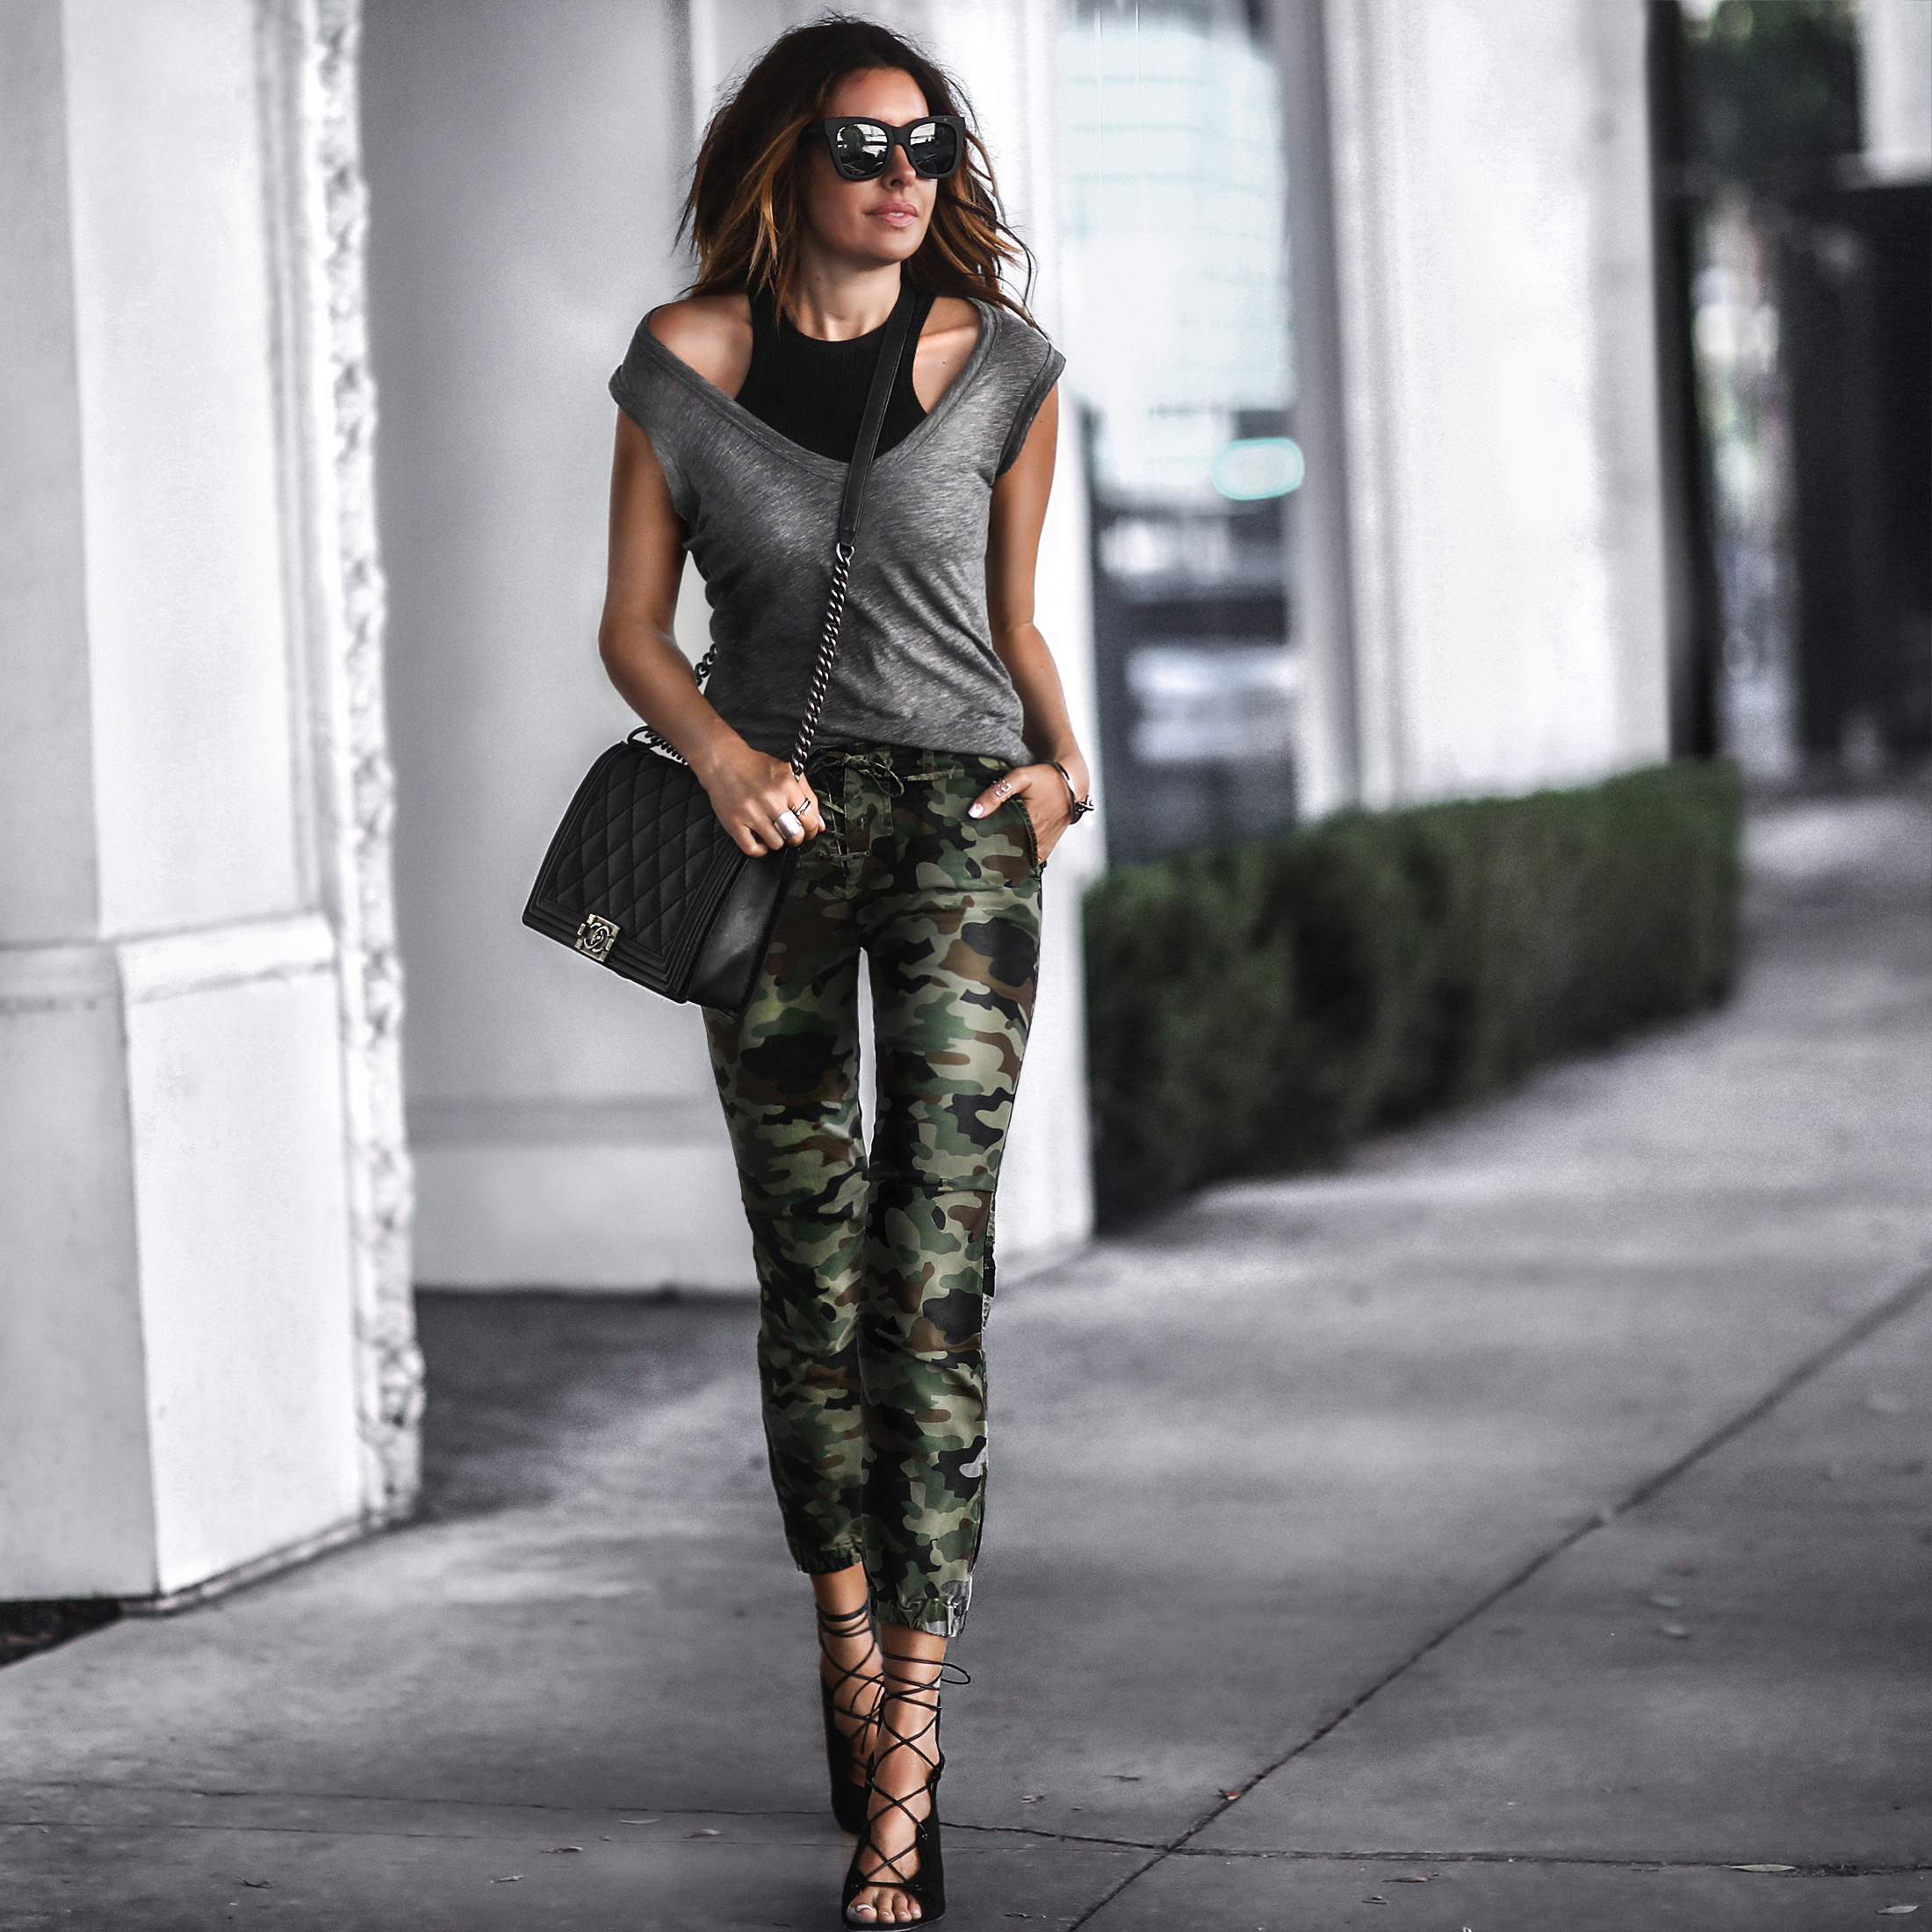 black ribbed tank top, grey v-neck tee, camo pants, lace up sandals, chanel bag